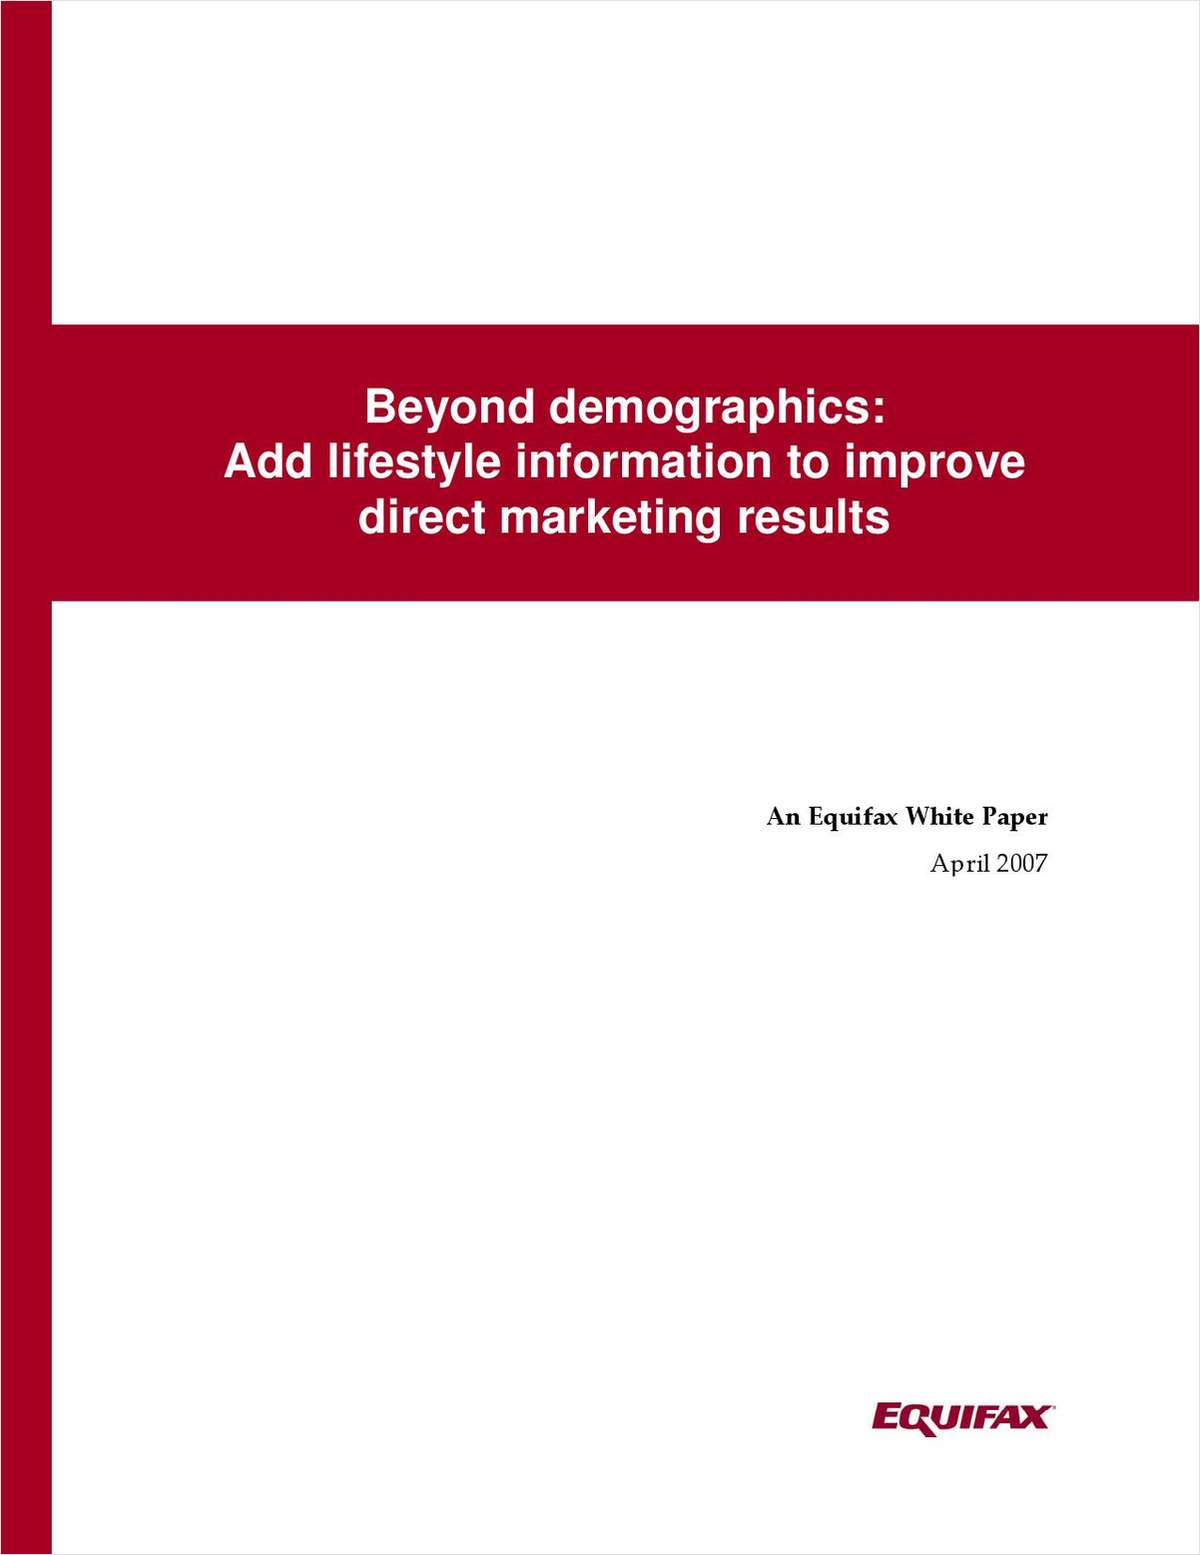 Beyond Demographics: Add Lifestyle Information to Improve Direct Marketing Results